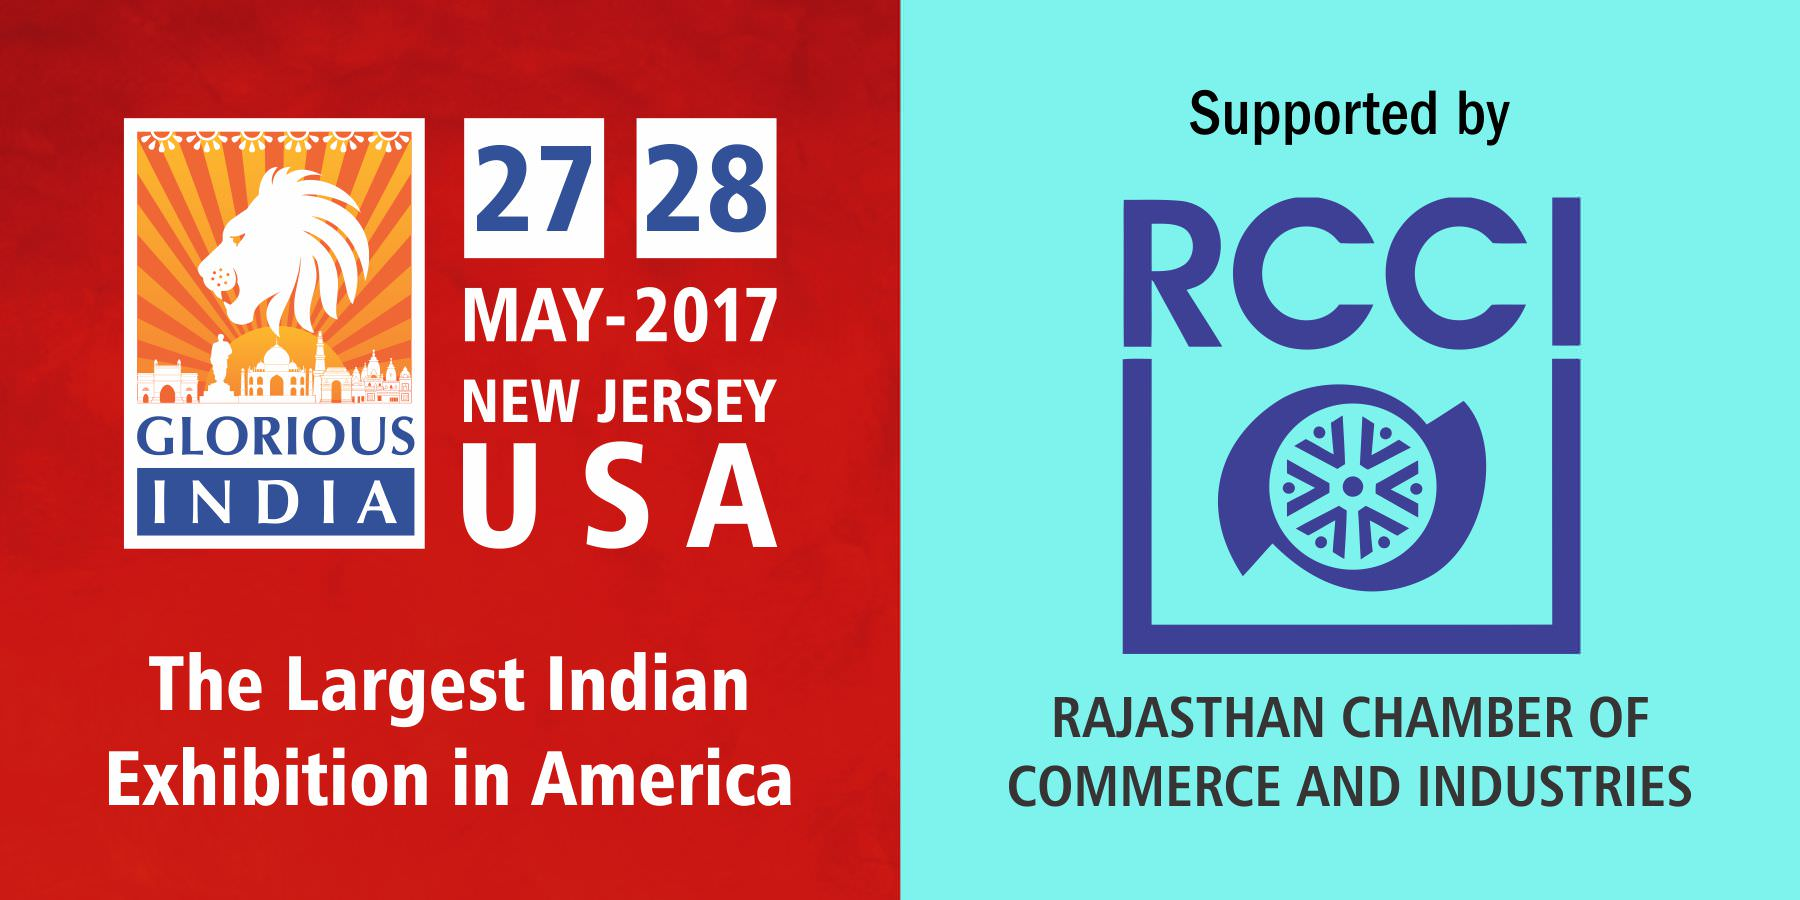 Glorious India Expo - Rajasthan Chamber of Commerce And Industries (RCC)